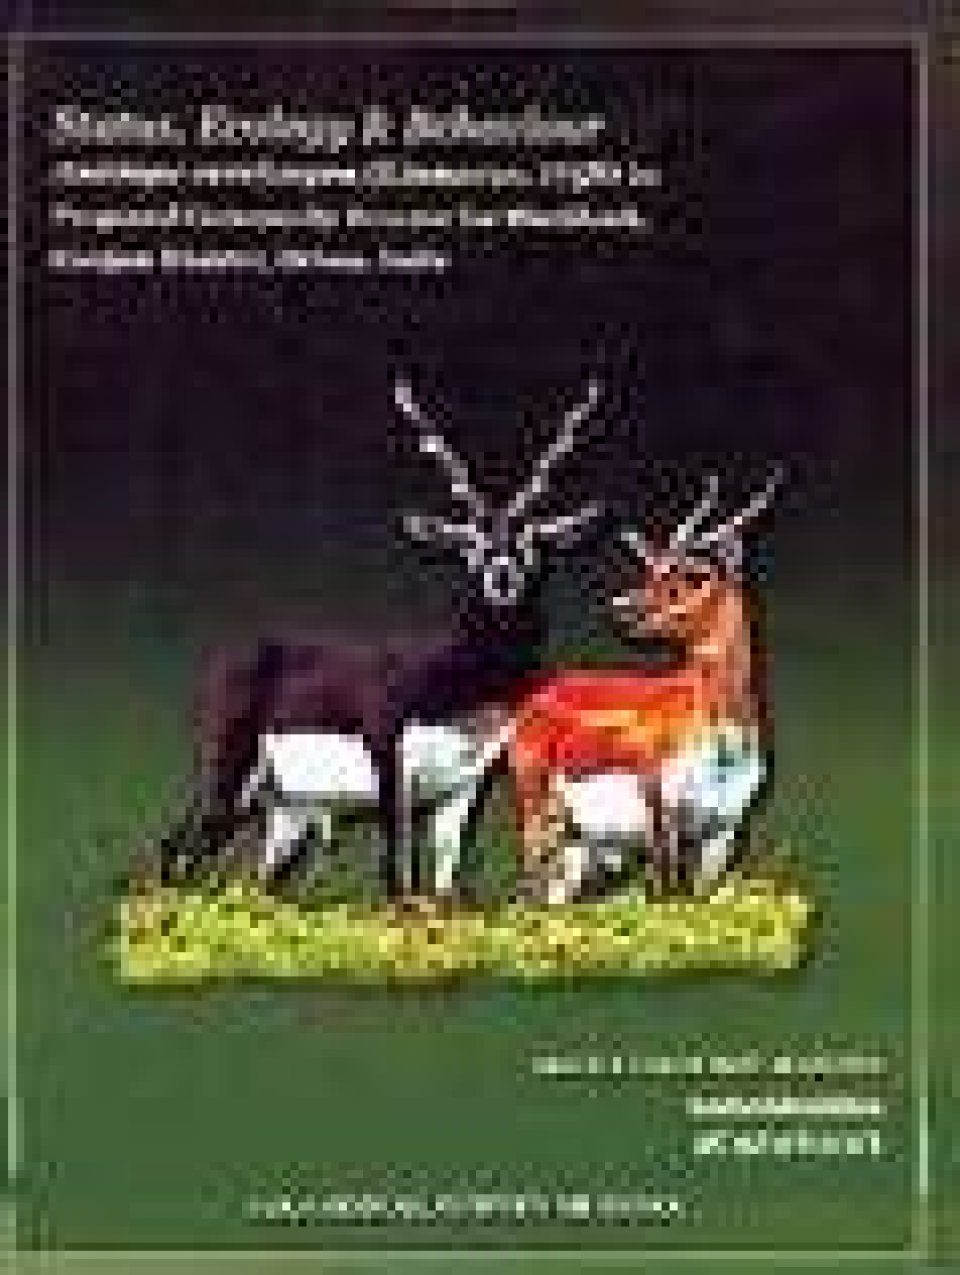 Status, Ecology and Behaviour of Antilope Cervicapra (Linnaeus, 1758) in Proposed Community Reserve for Balckbuck, Ganjam District, Orissa